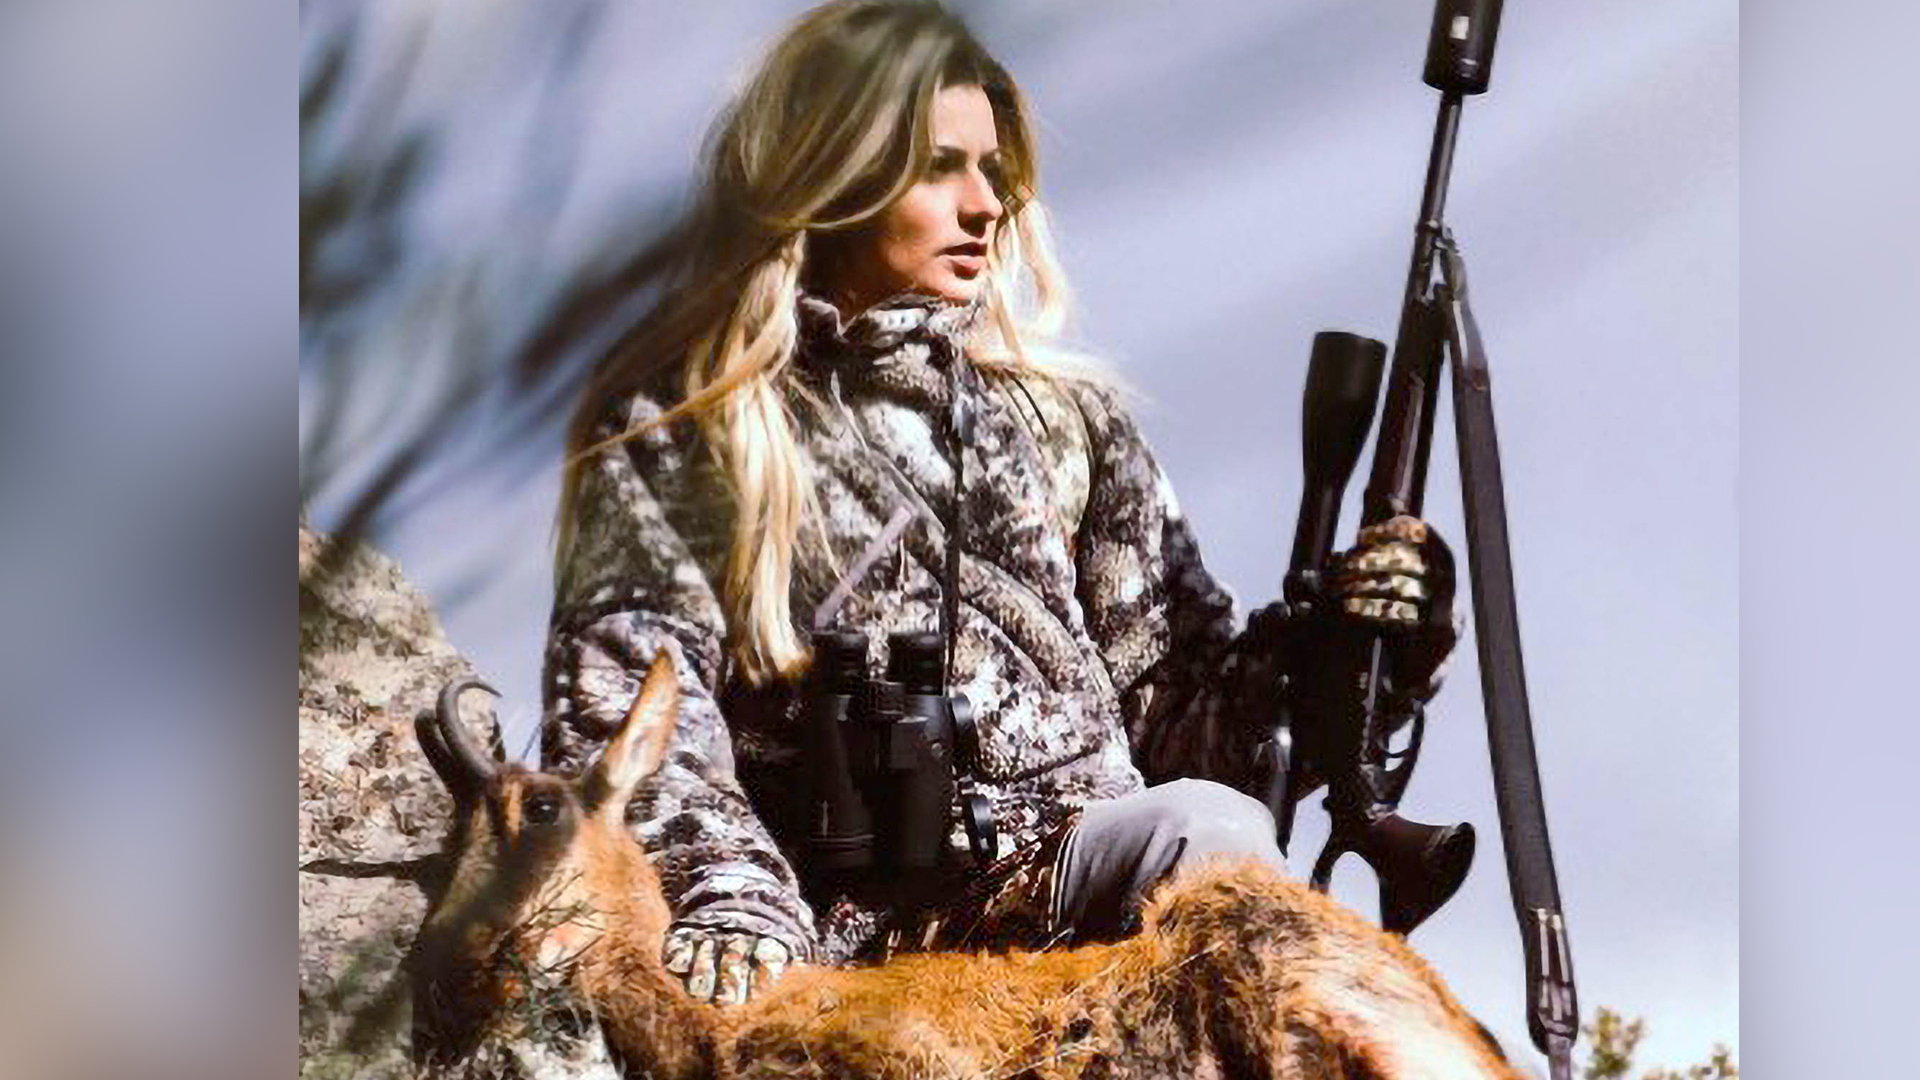 VIDEO: Young Face Of Modern French Hunting Loves Vegas Gun Show And Shooting Scottish Grouse